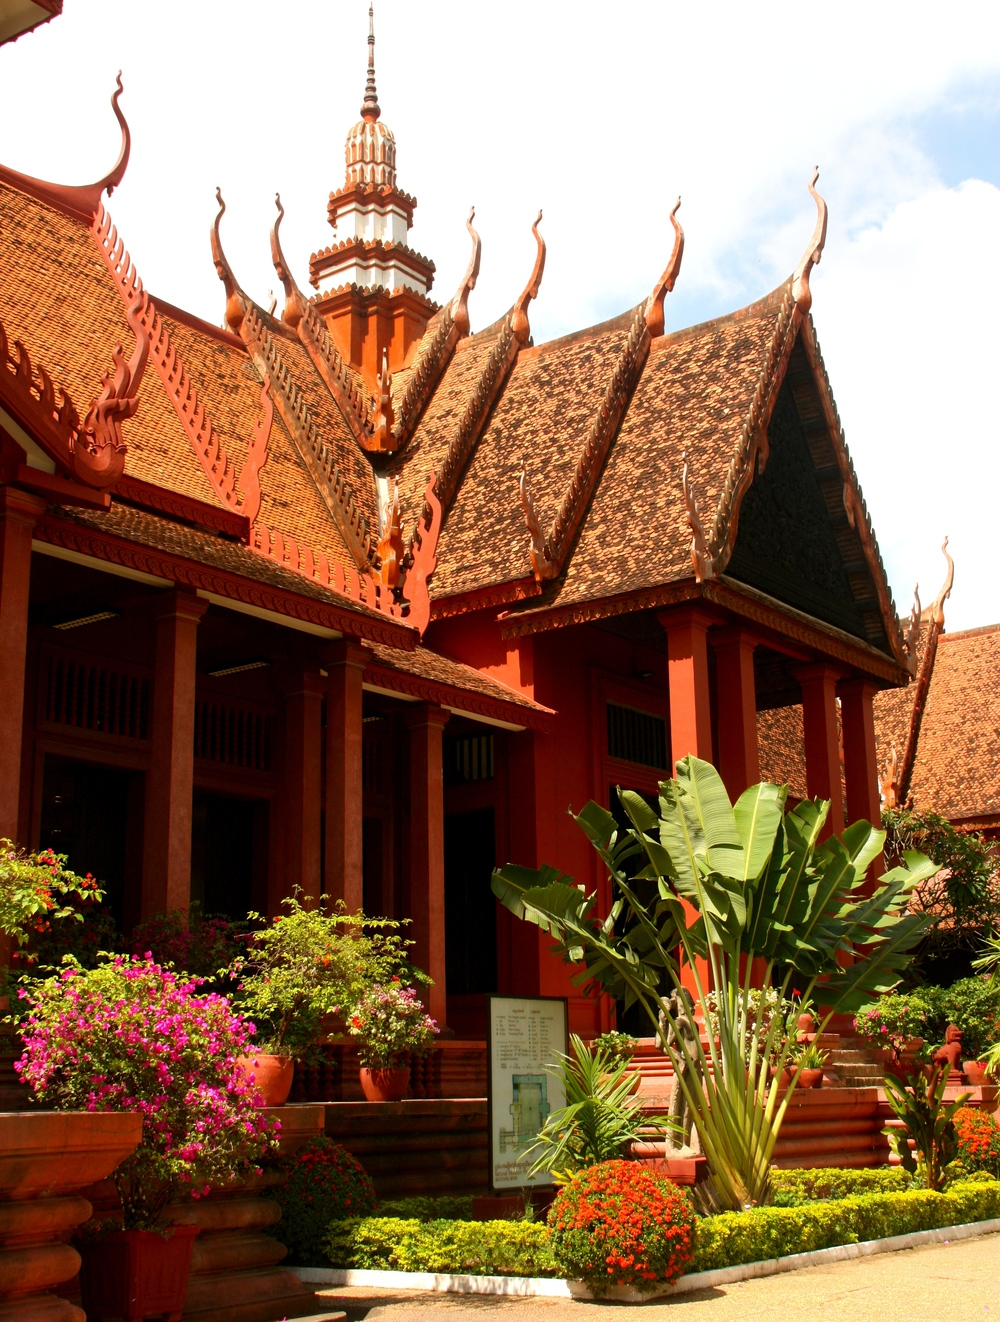 What to do in Phnom Penh?